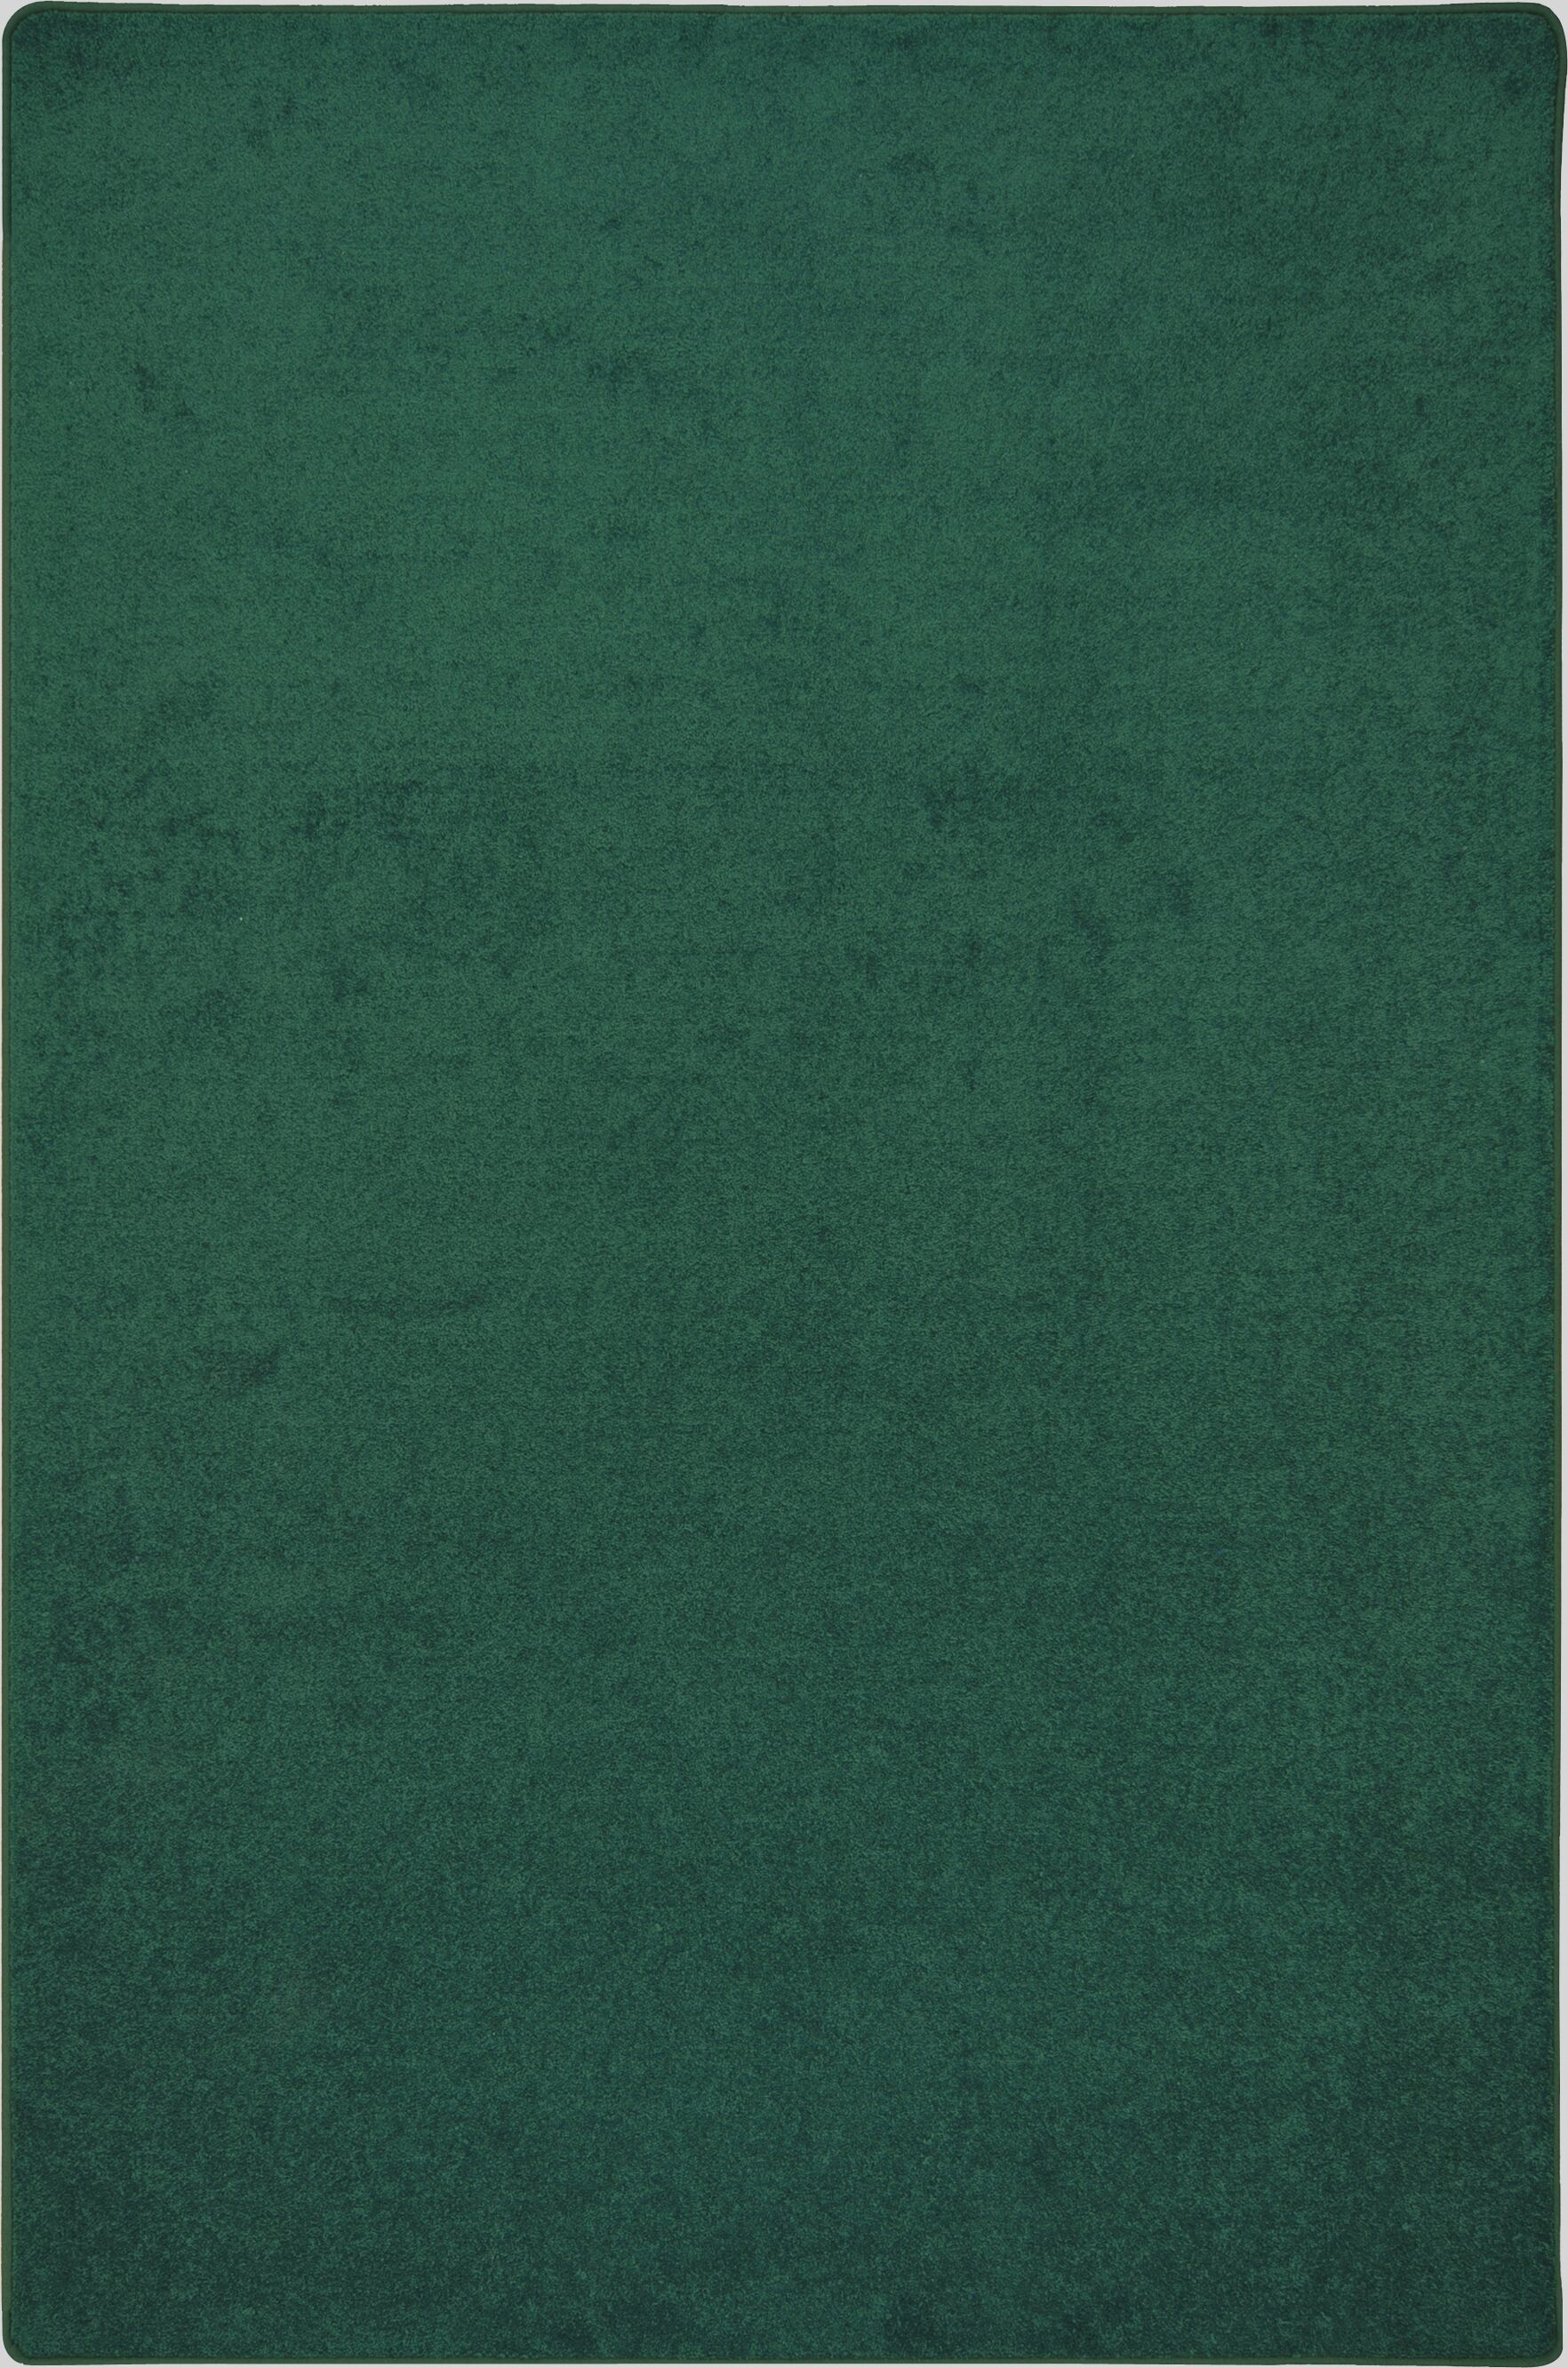 Green Area Rug Rug Size: Rectangle 8' x 12'